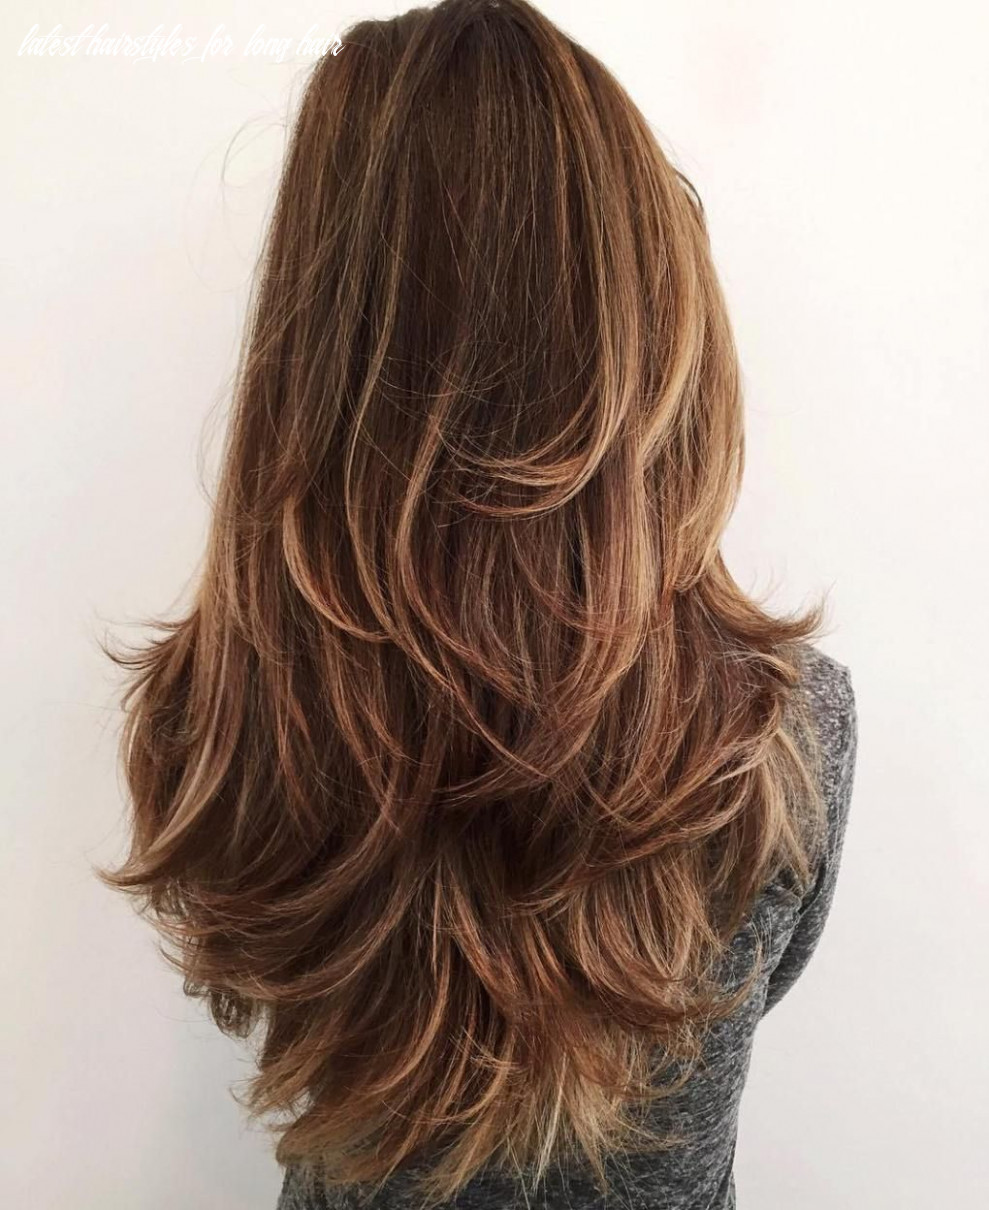 Pin on hair & wellness latest hairstyles for long hair